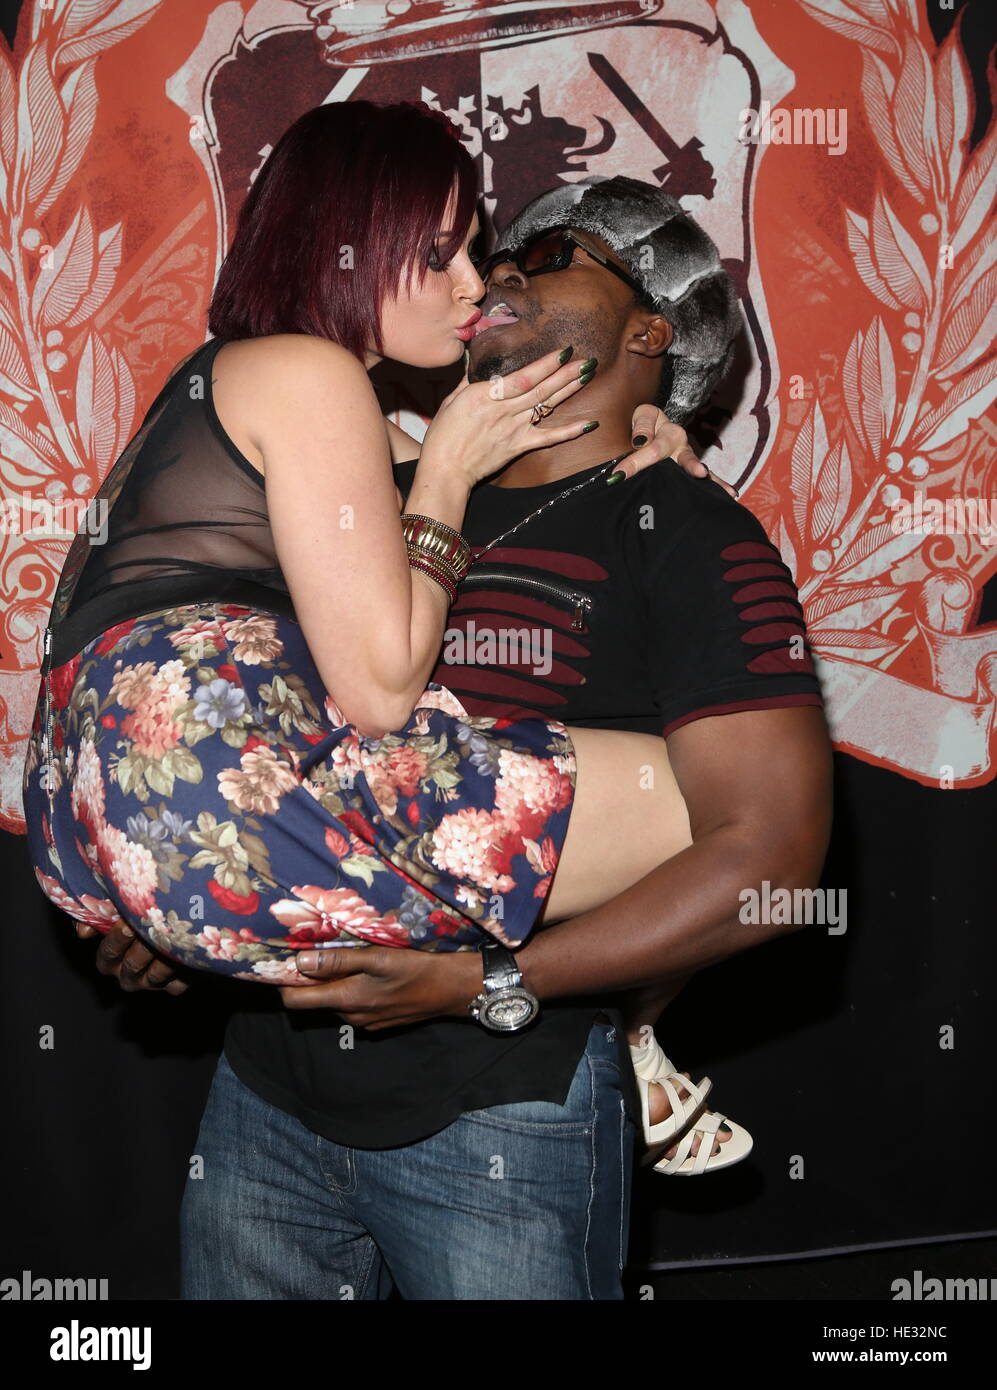 Pornopalooza Hosted By Sdr At Hqnyc In New York City Featuring Tory Lane Moe